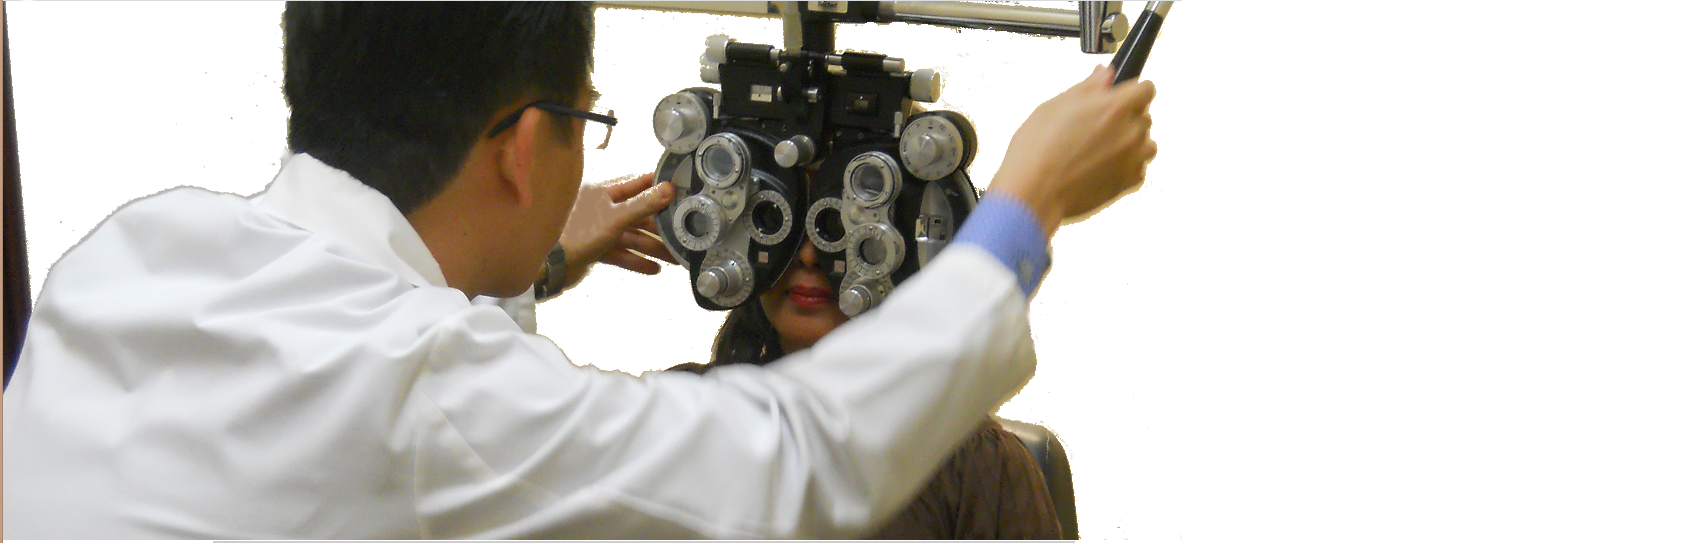 How to Prepare for an Eye Exam How to Prepare for an Eye Exam new photo